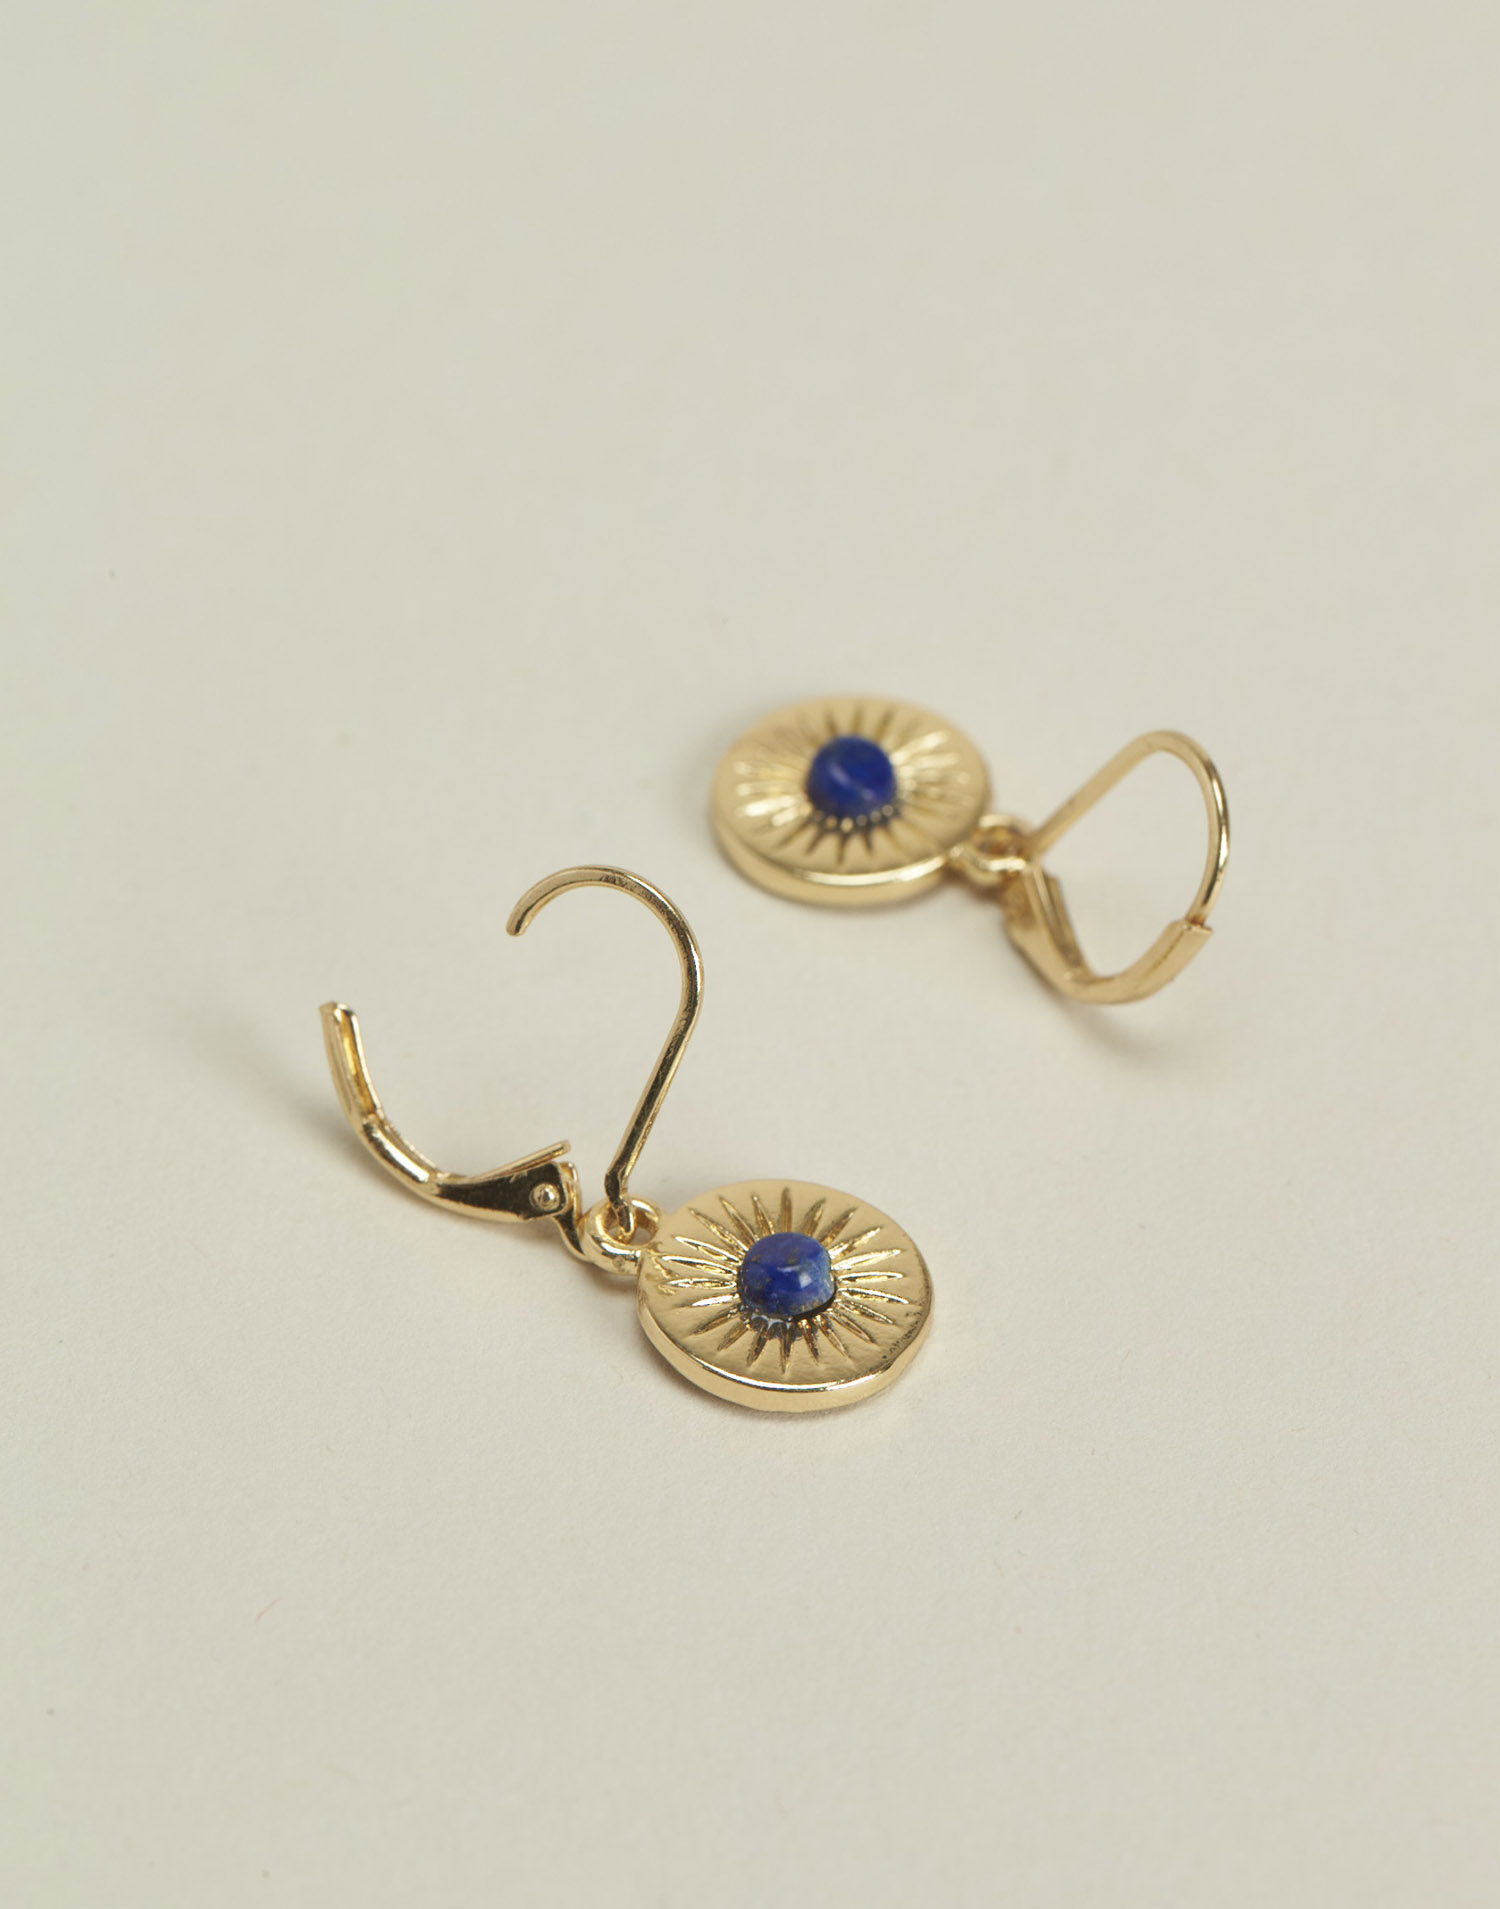 Round medal and stone earrings